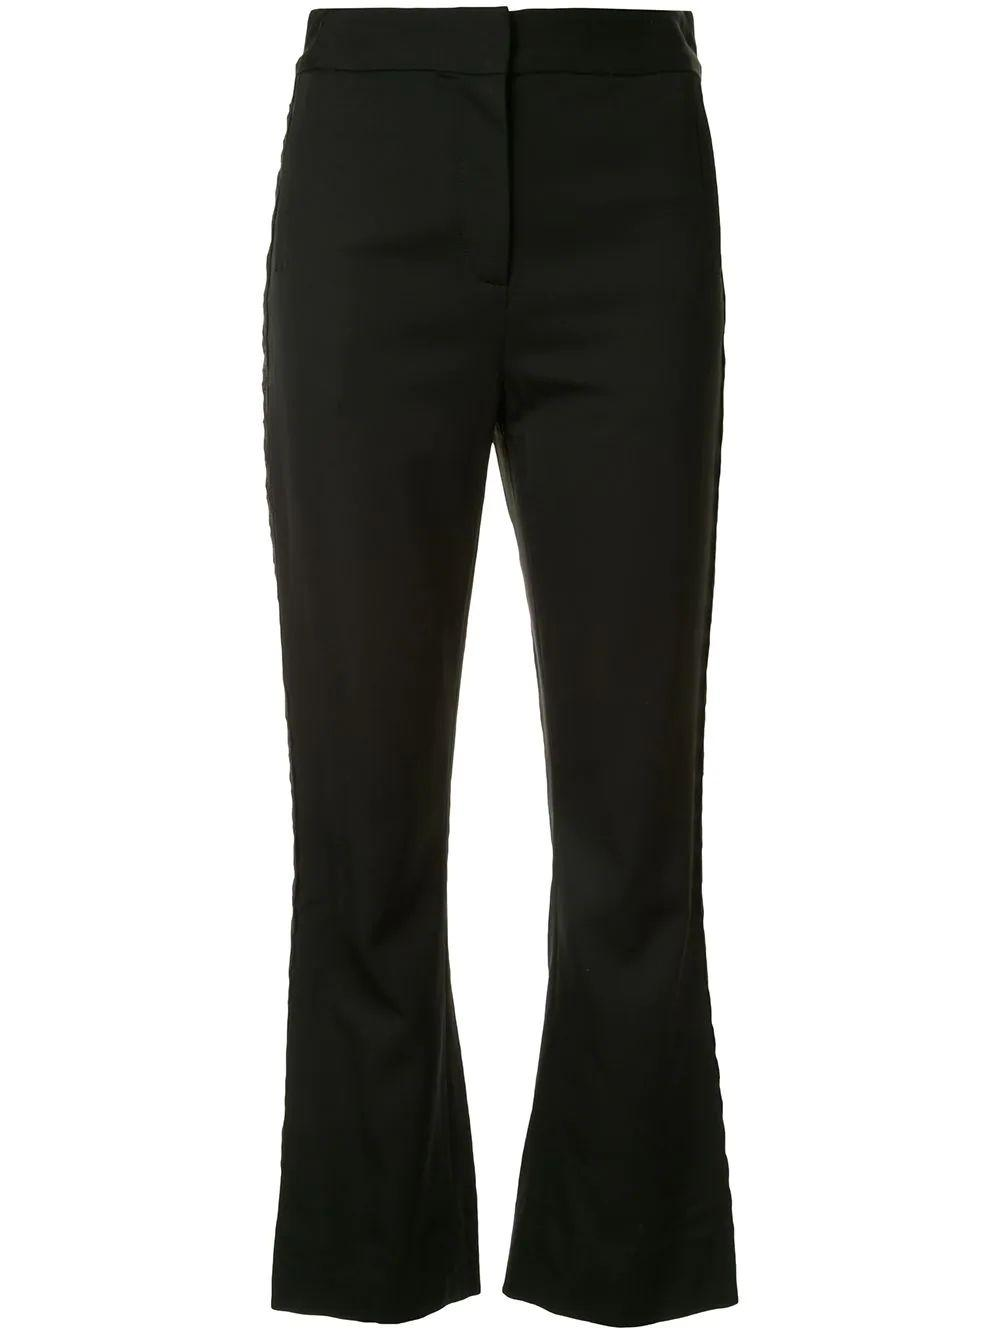 Embroidered Flare Trouser